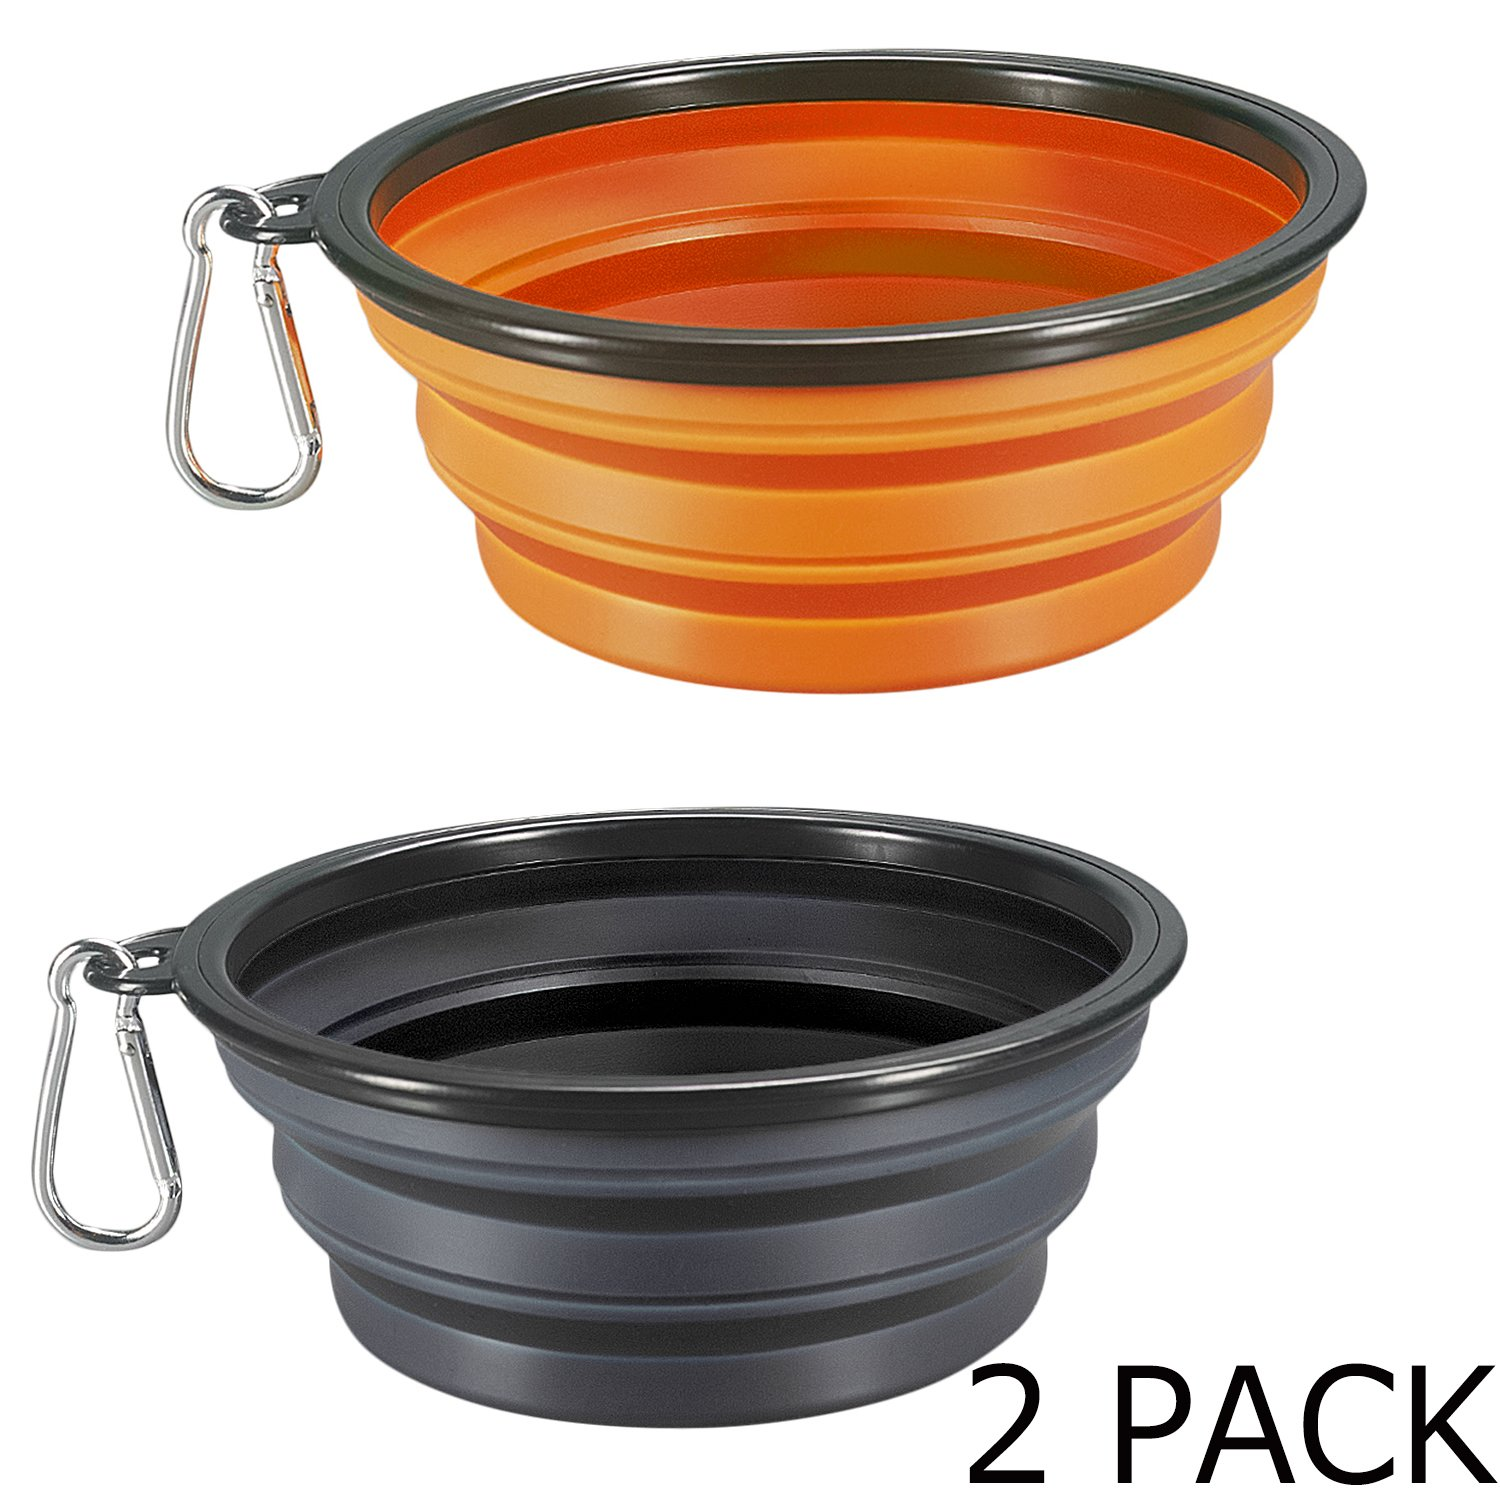 COMSUN Collapsible Dog Bowl Dog Travel Bowl Foldable Expandable Cup Dish for Pet Cat Food Water Feeding Portable Travel Bowl